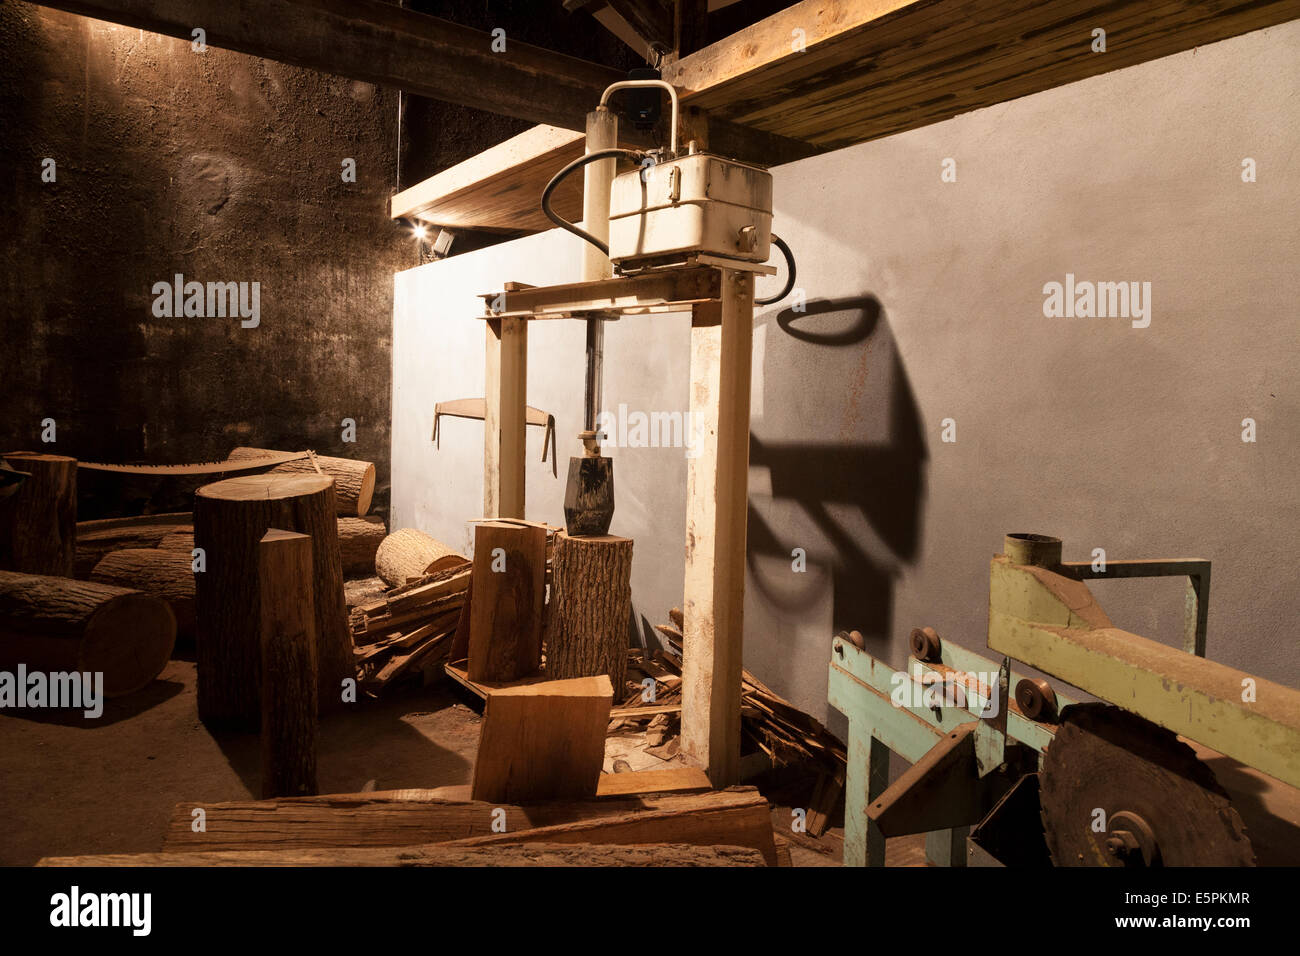 Display of splitting French oak to make the aging barrels. - Stock Image